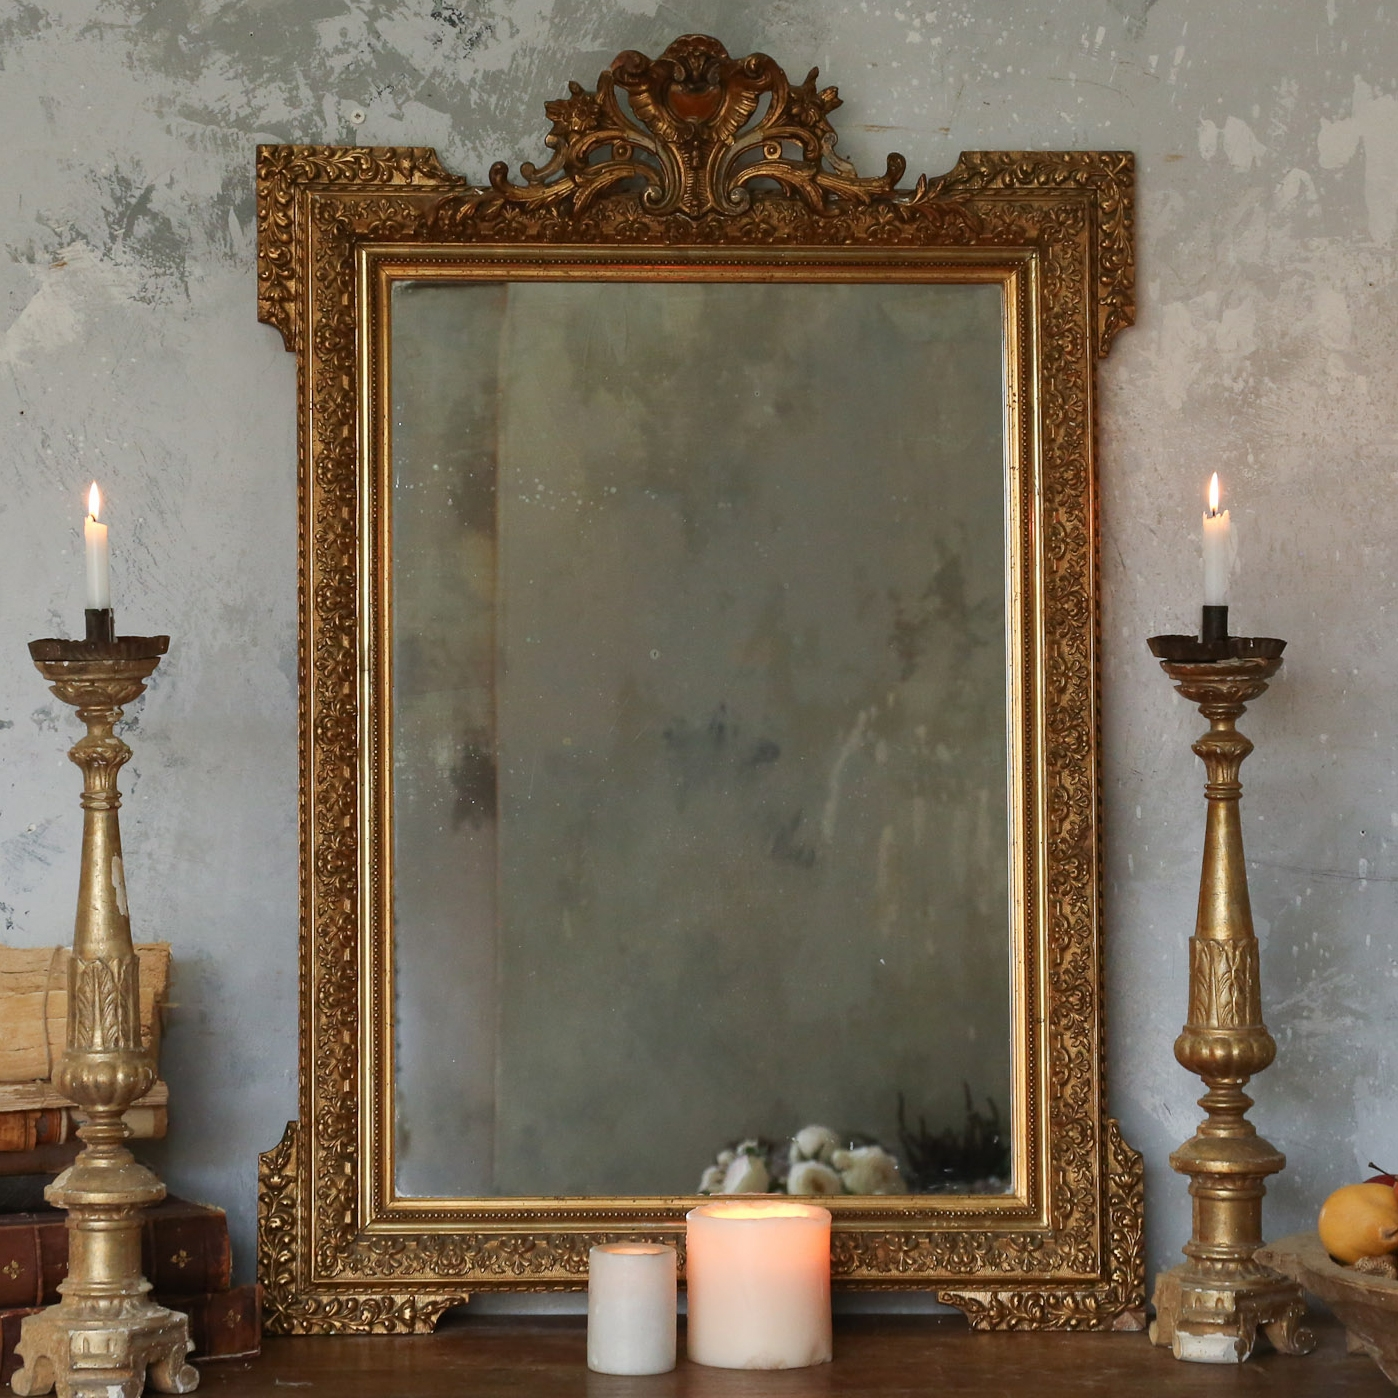 Mirror Ideas About Old Mirrors On Pinterest Vintage Antique For Regarding Vintage Wall Mirrors For Sale (Image 9 of 15)